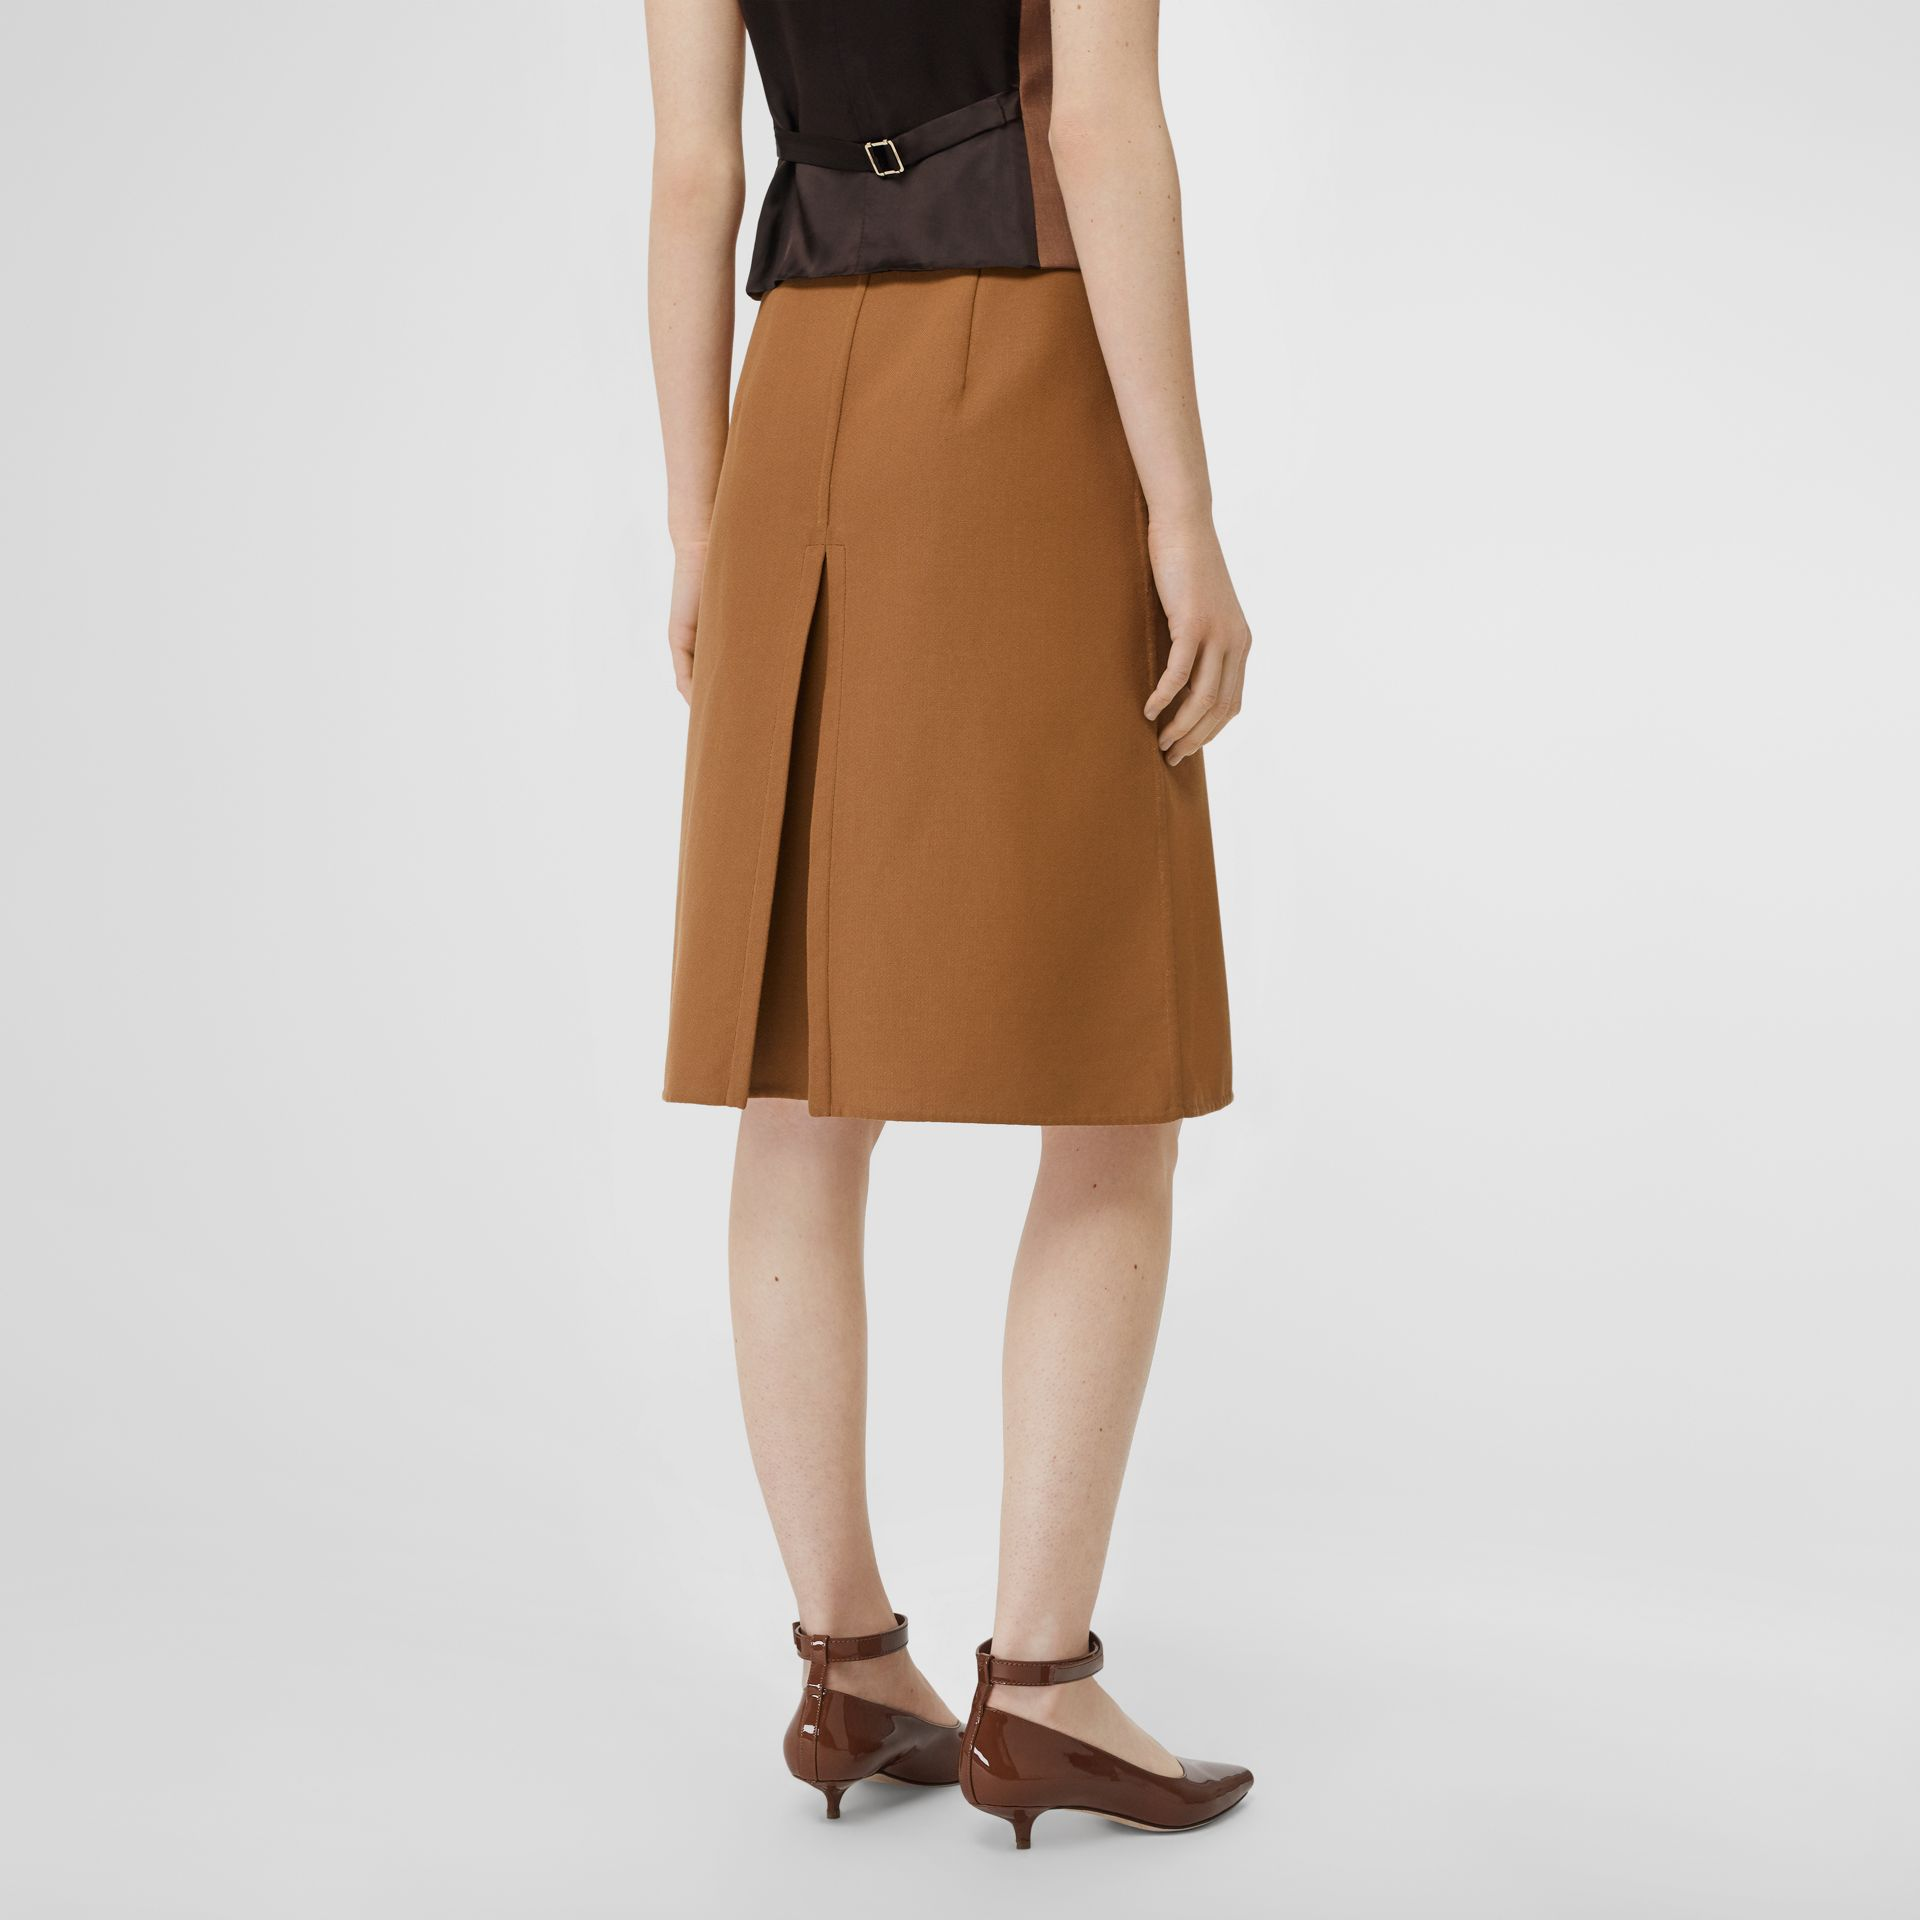 Box Pleat Detail Cotton A-line Skirt in Bronze - Women | Burberry - gallery image 2